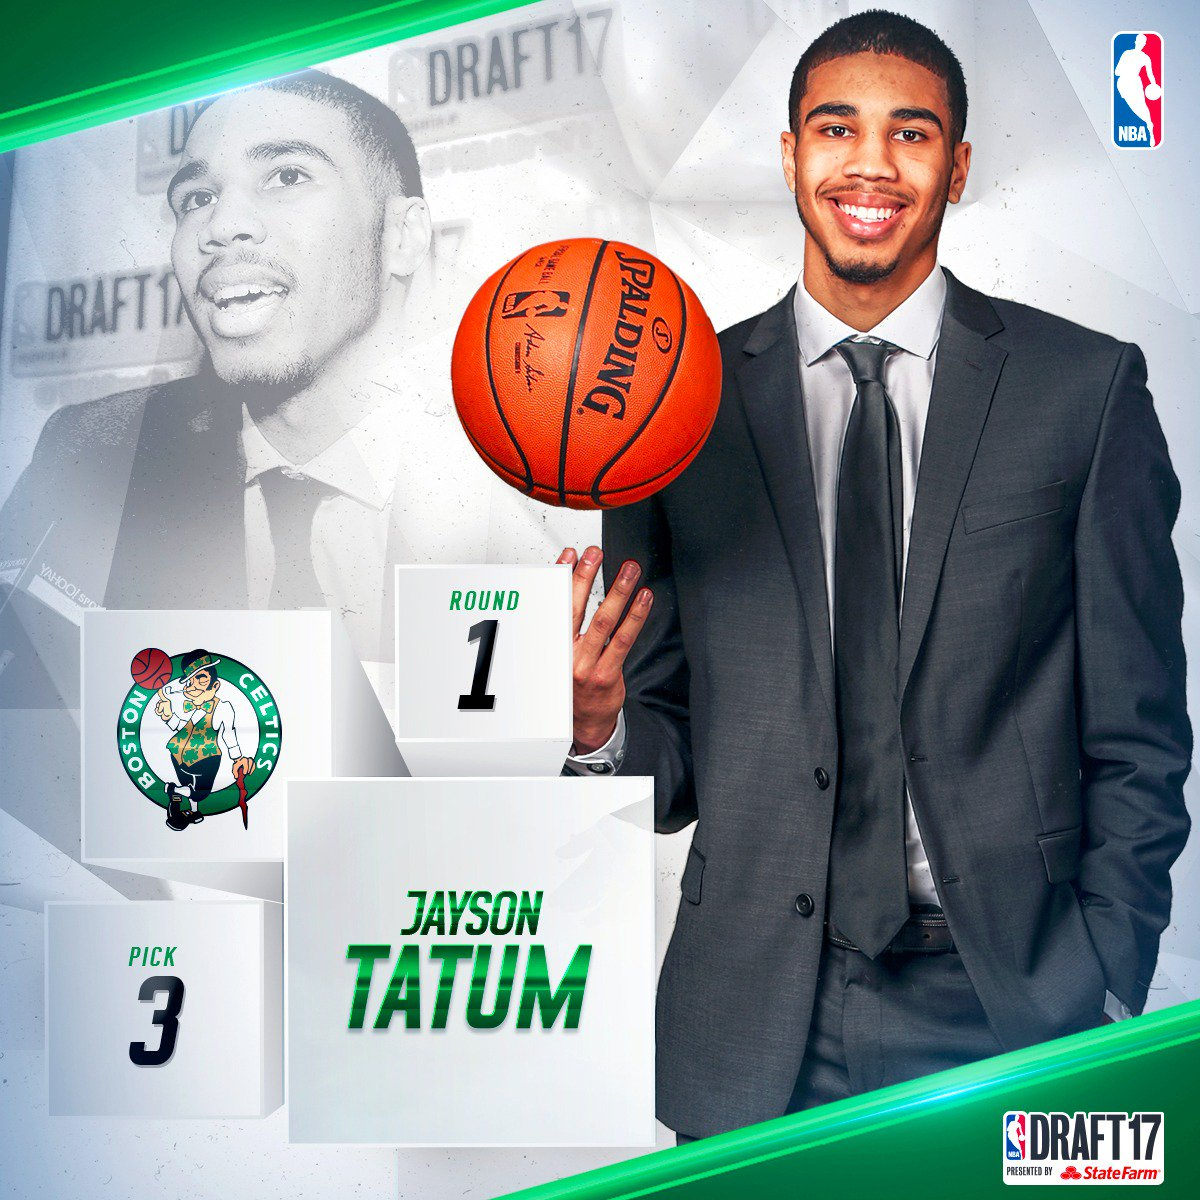 With the third pick in the 2017 #NBADraft, the @celtics select @jaytat...